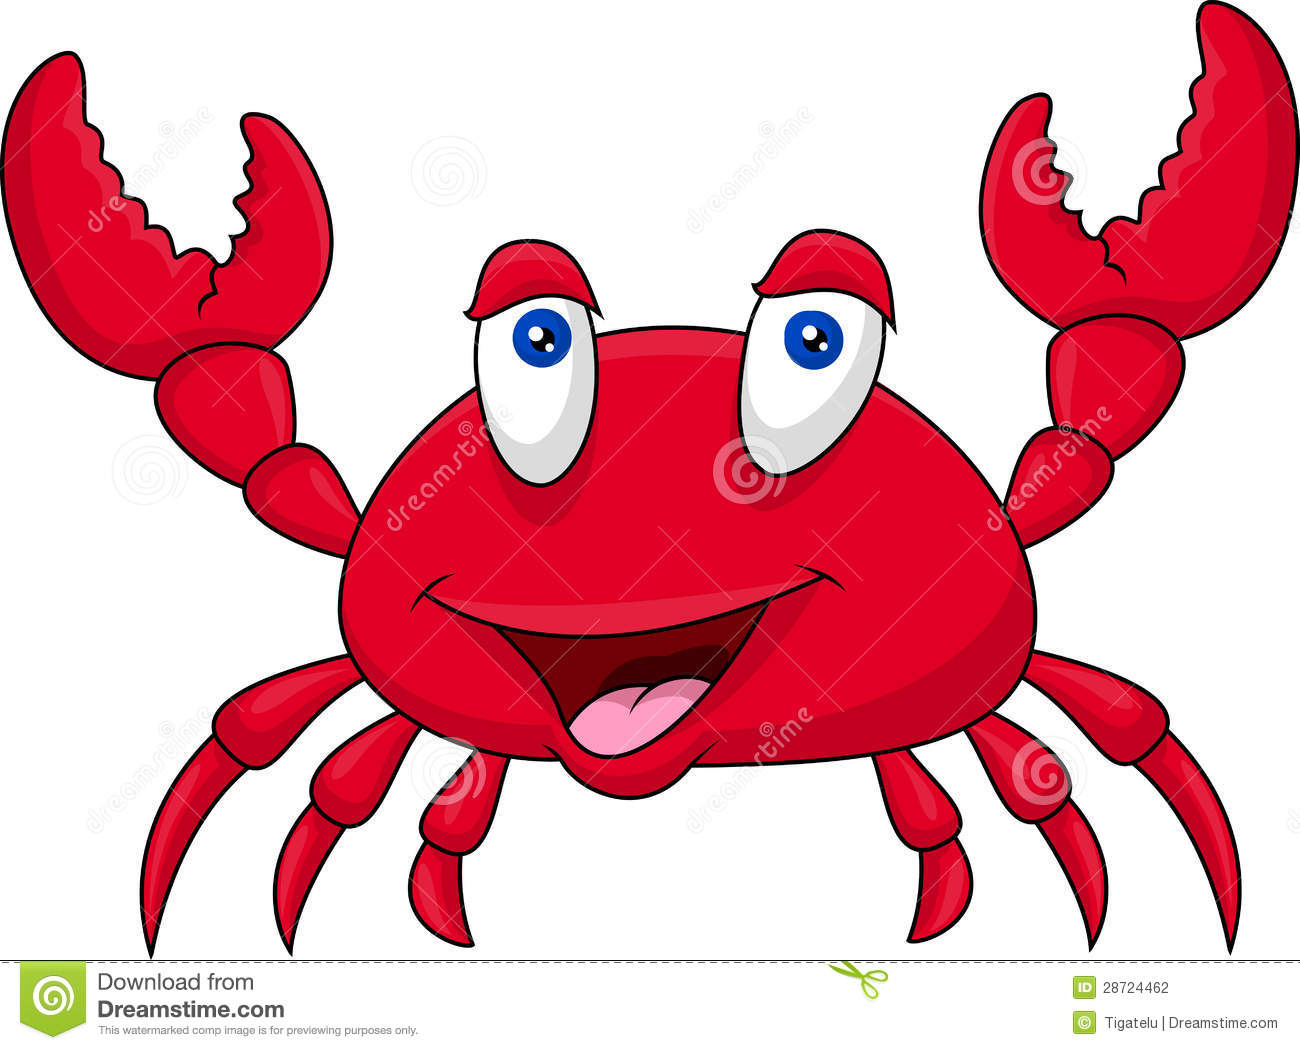 Funny crab cartoon stock vector. Illustration of exotic ...